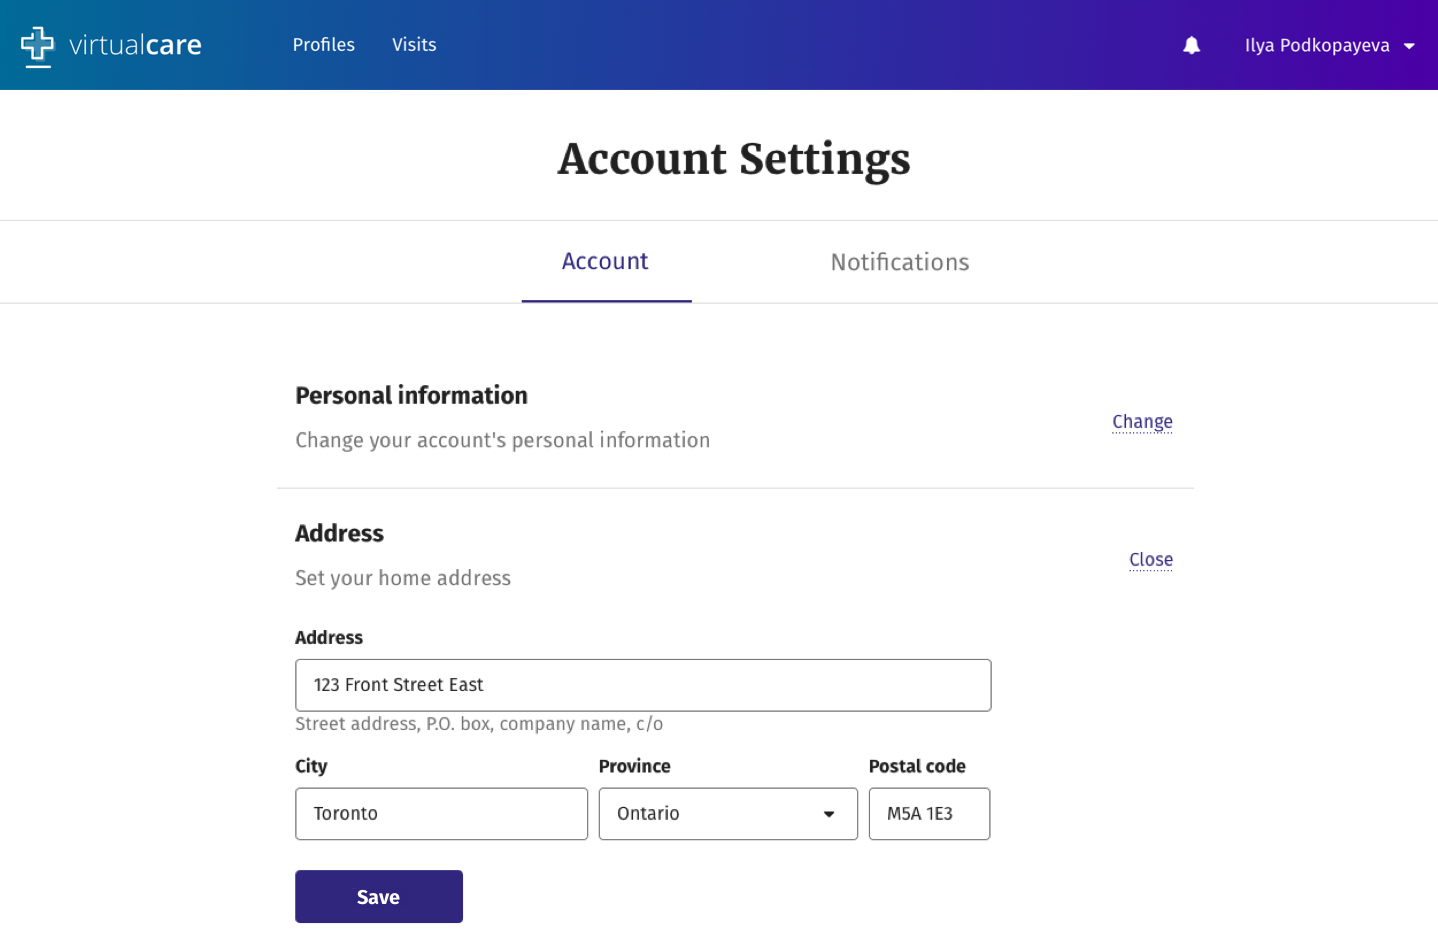 Virtual Care Account Settings - Address